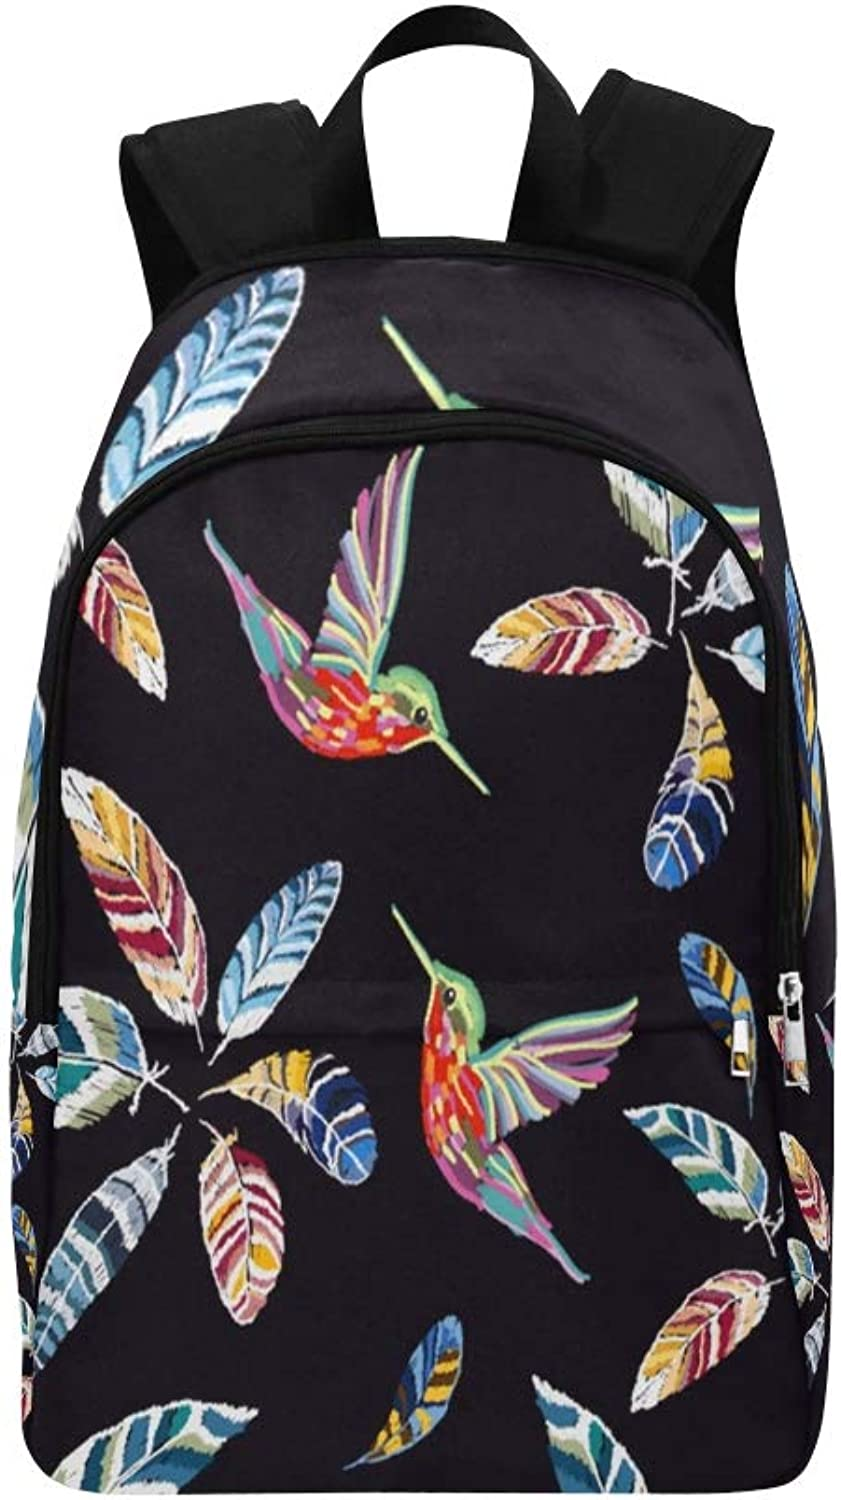 Embroidery colorful Feathers Casual Daypack Travel Bag College School Backpack for Mens and Women